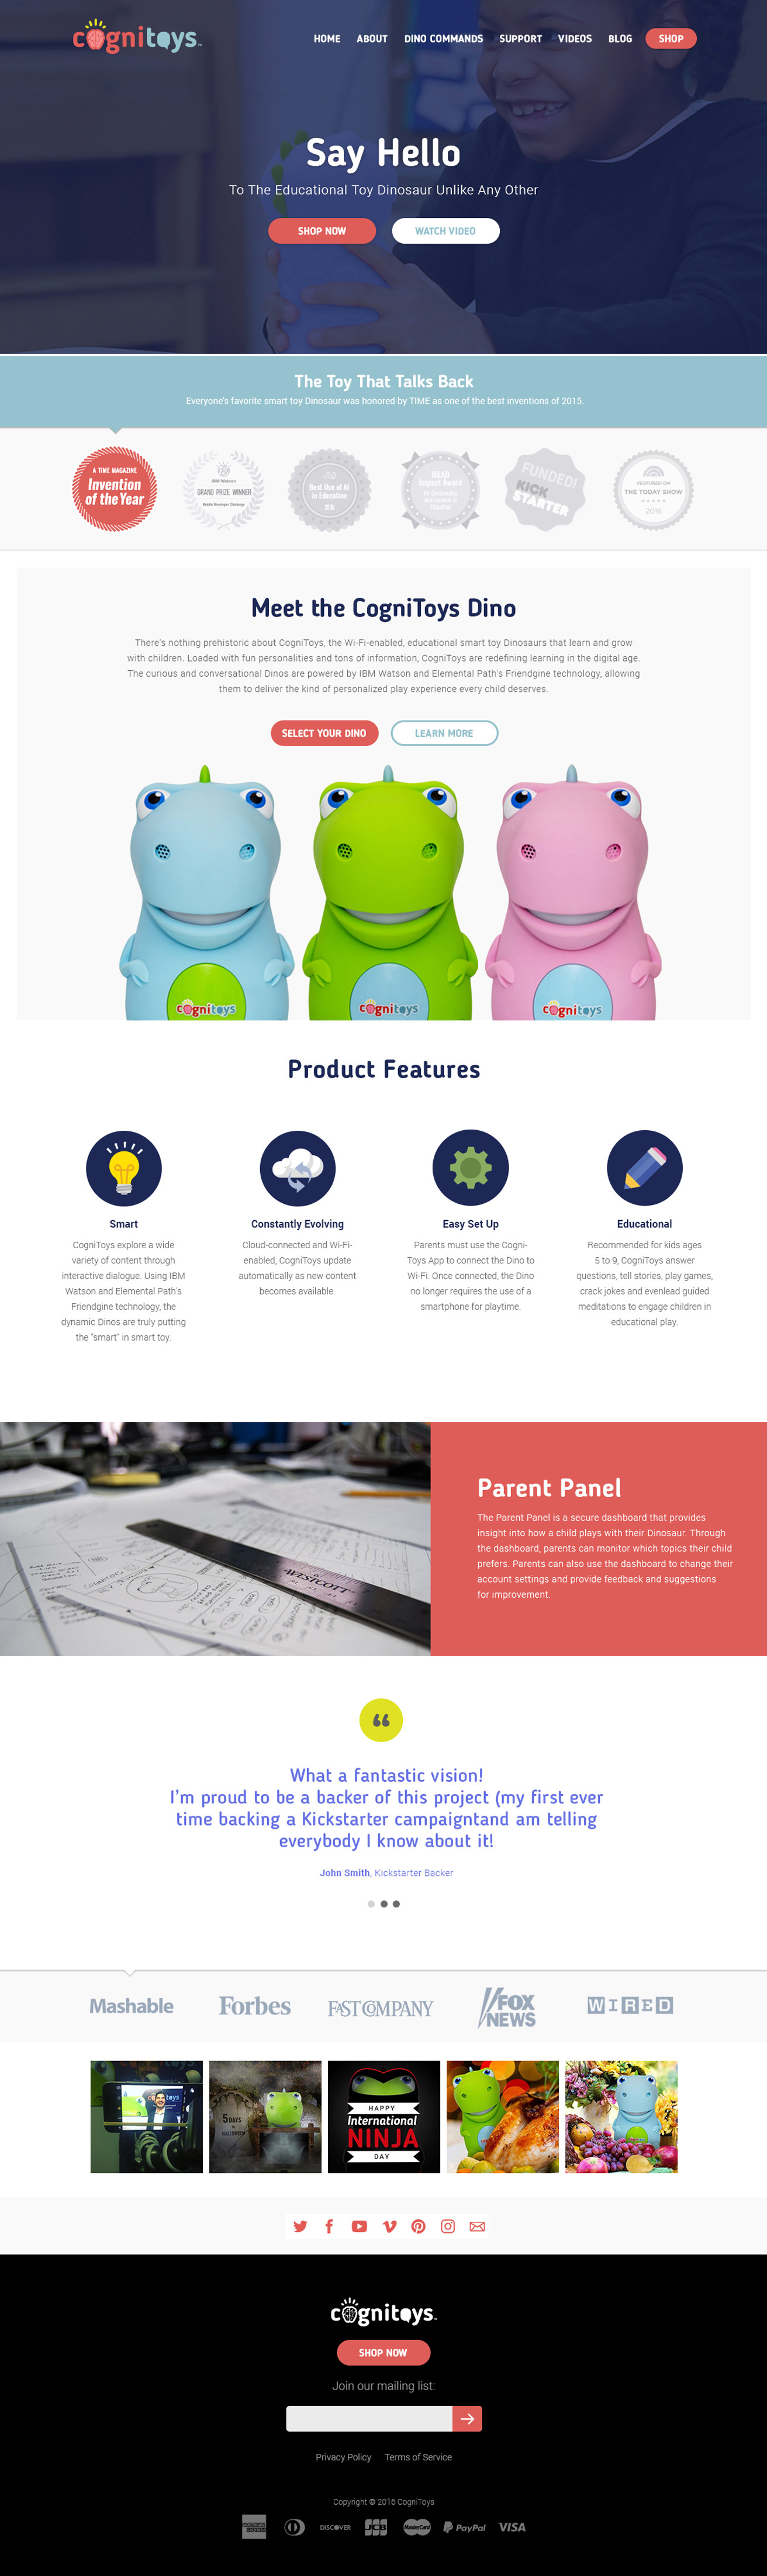 Desktop design for the CogniToys consumer website.